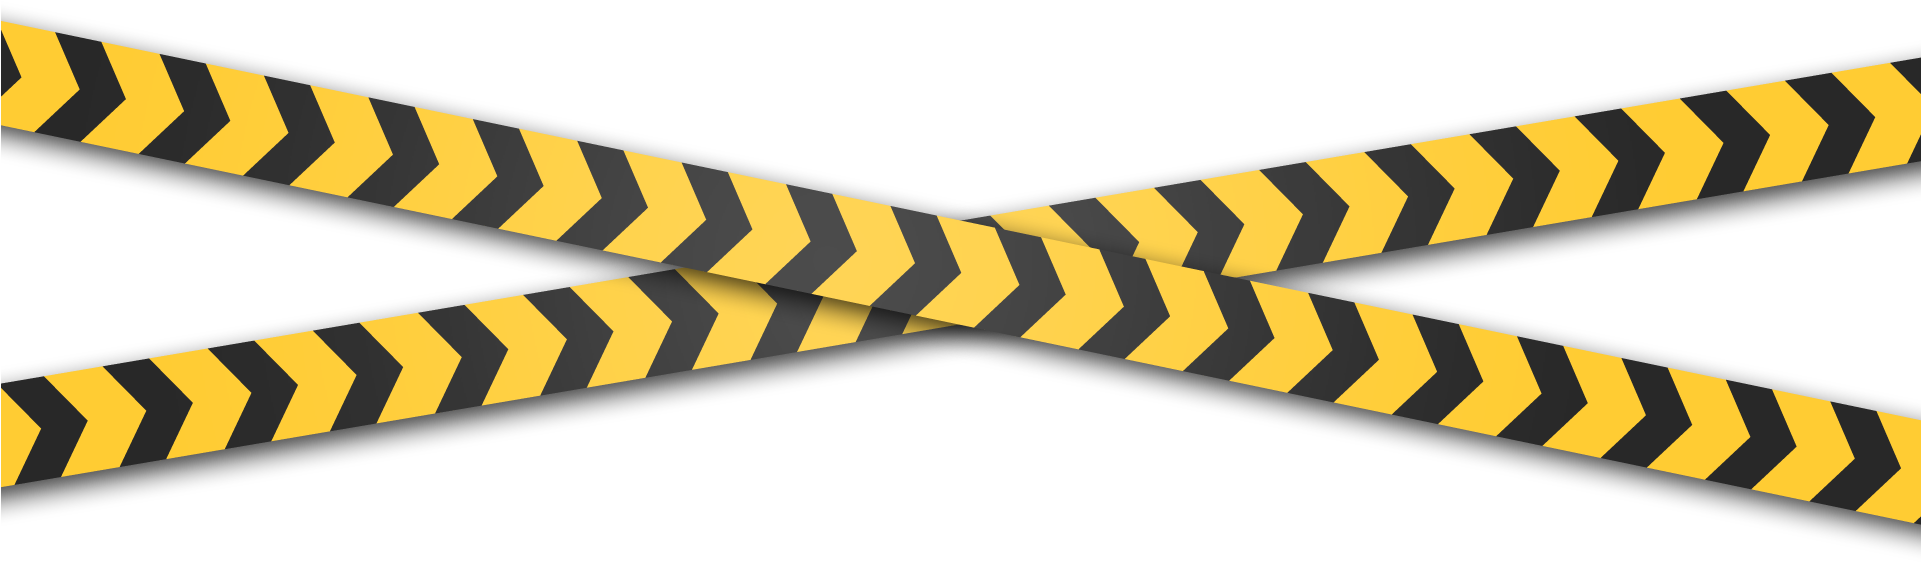 Construction tape png. Download hd under x